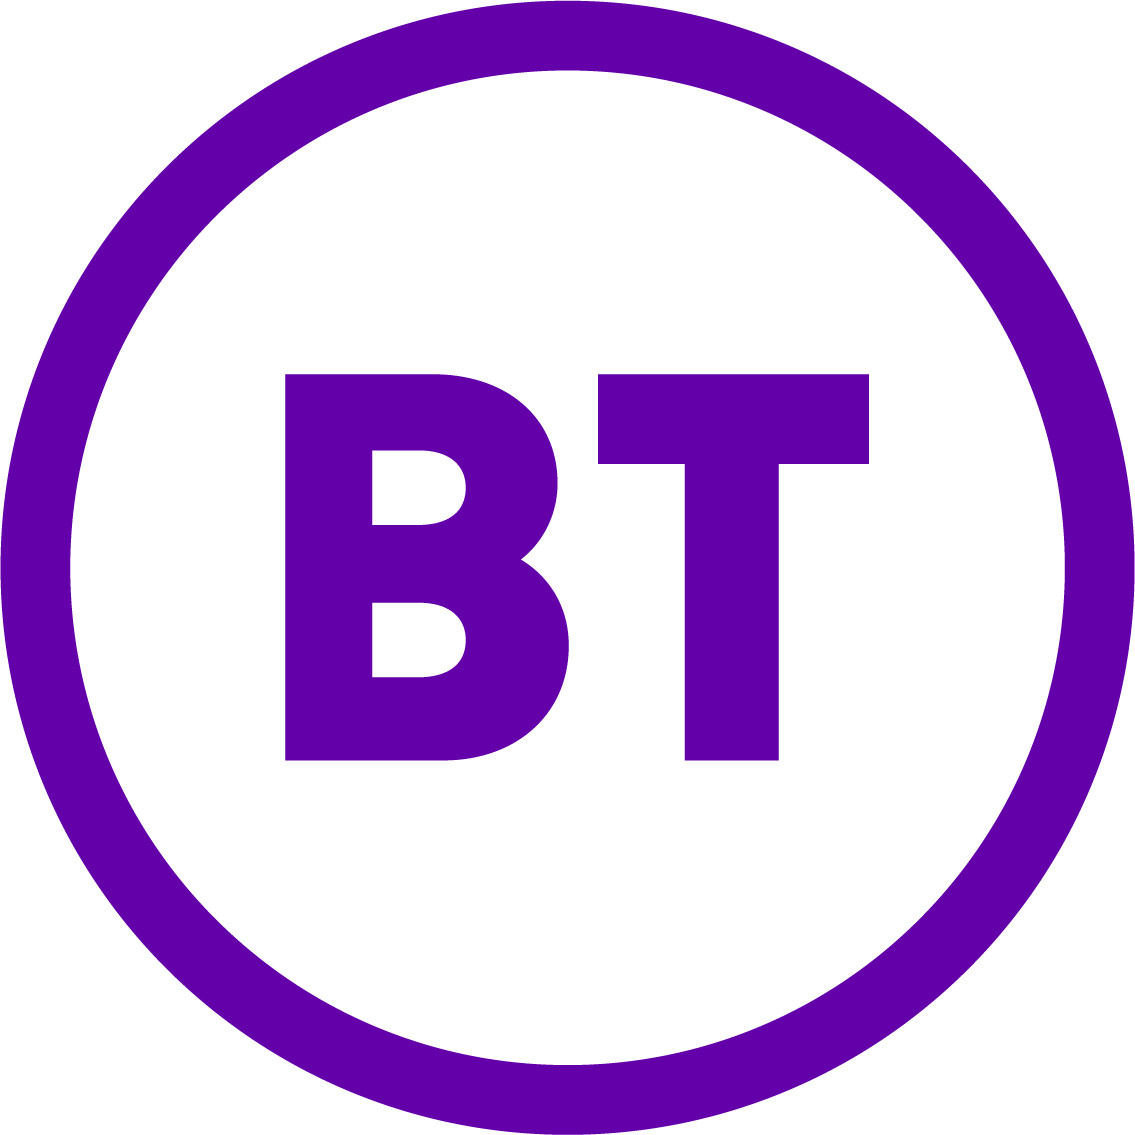 BT Broadband & Mobile - 6GB for £9